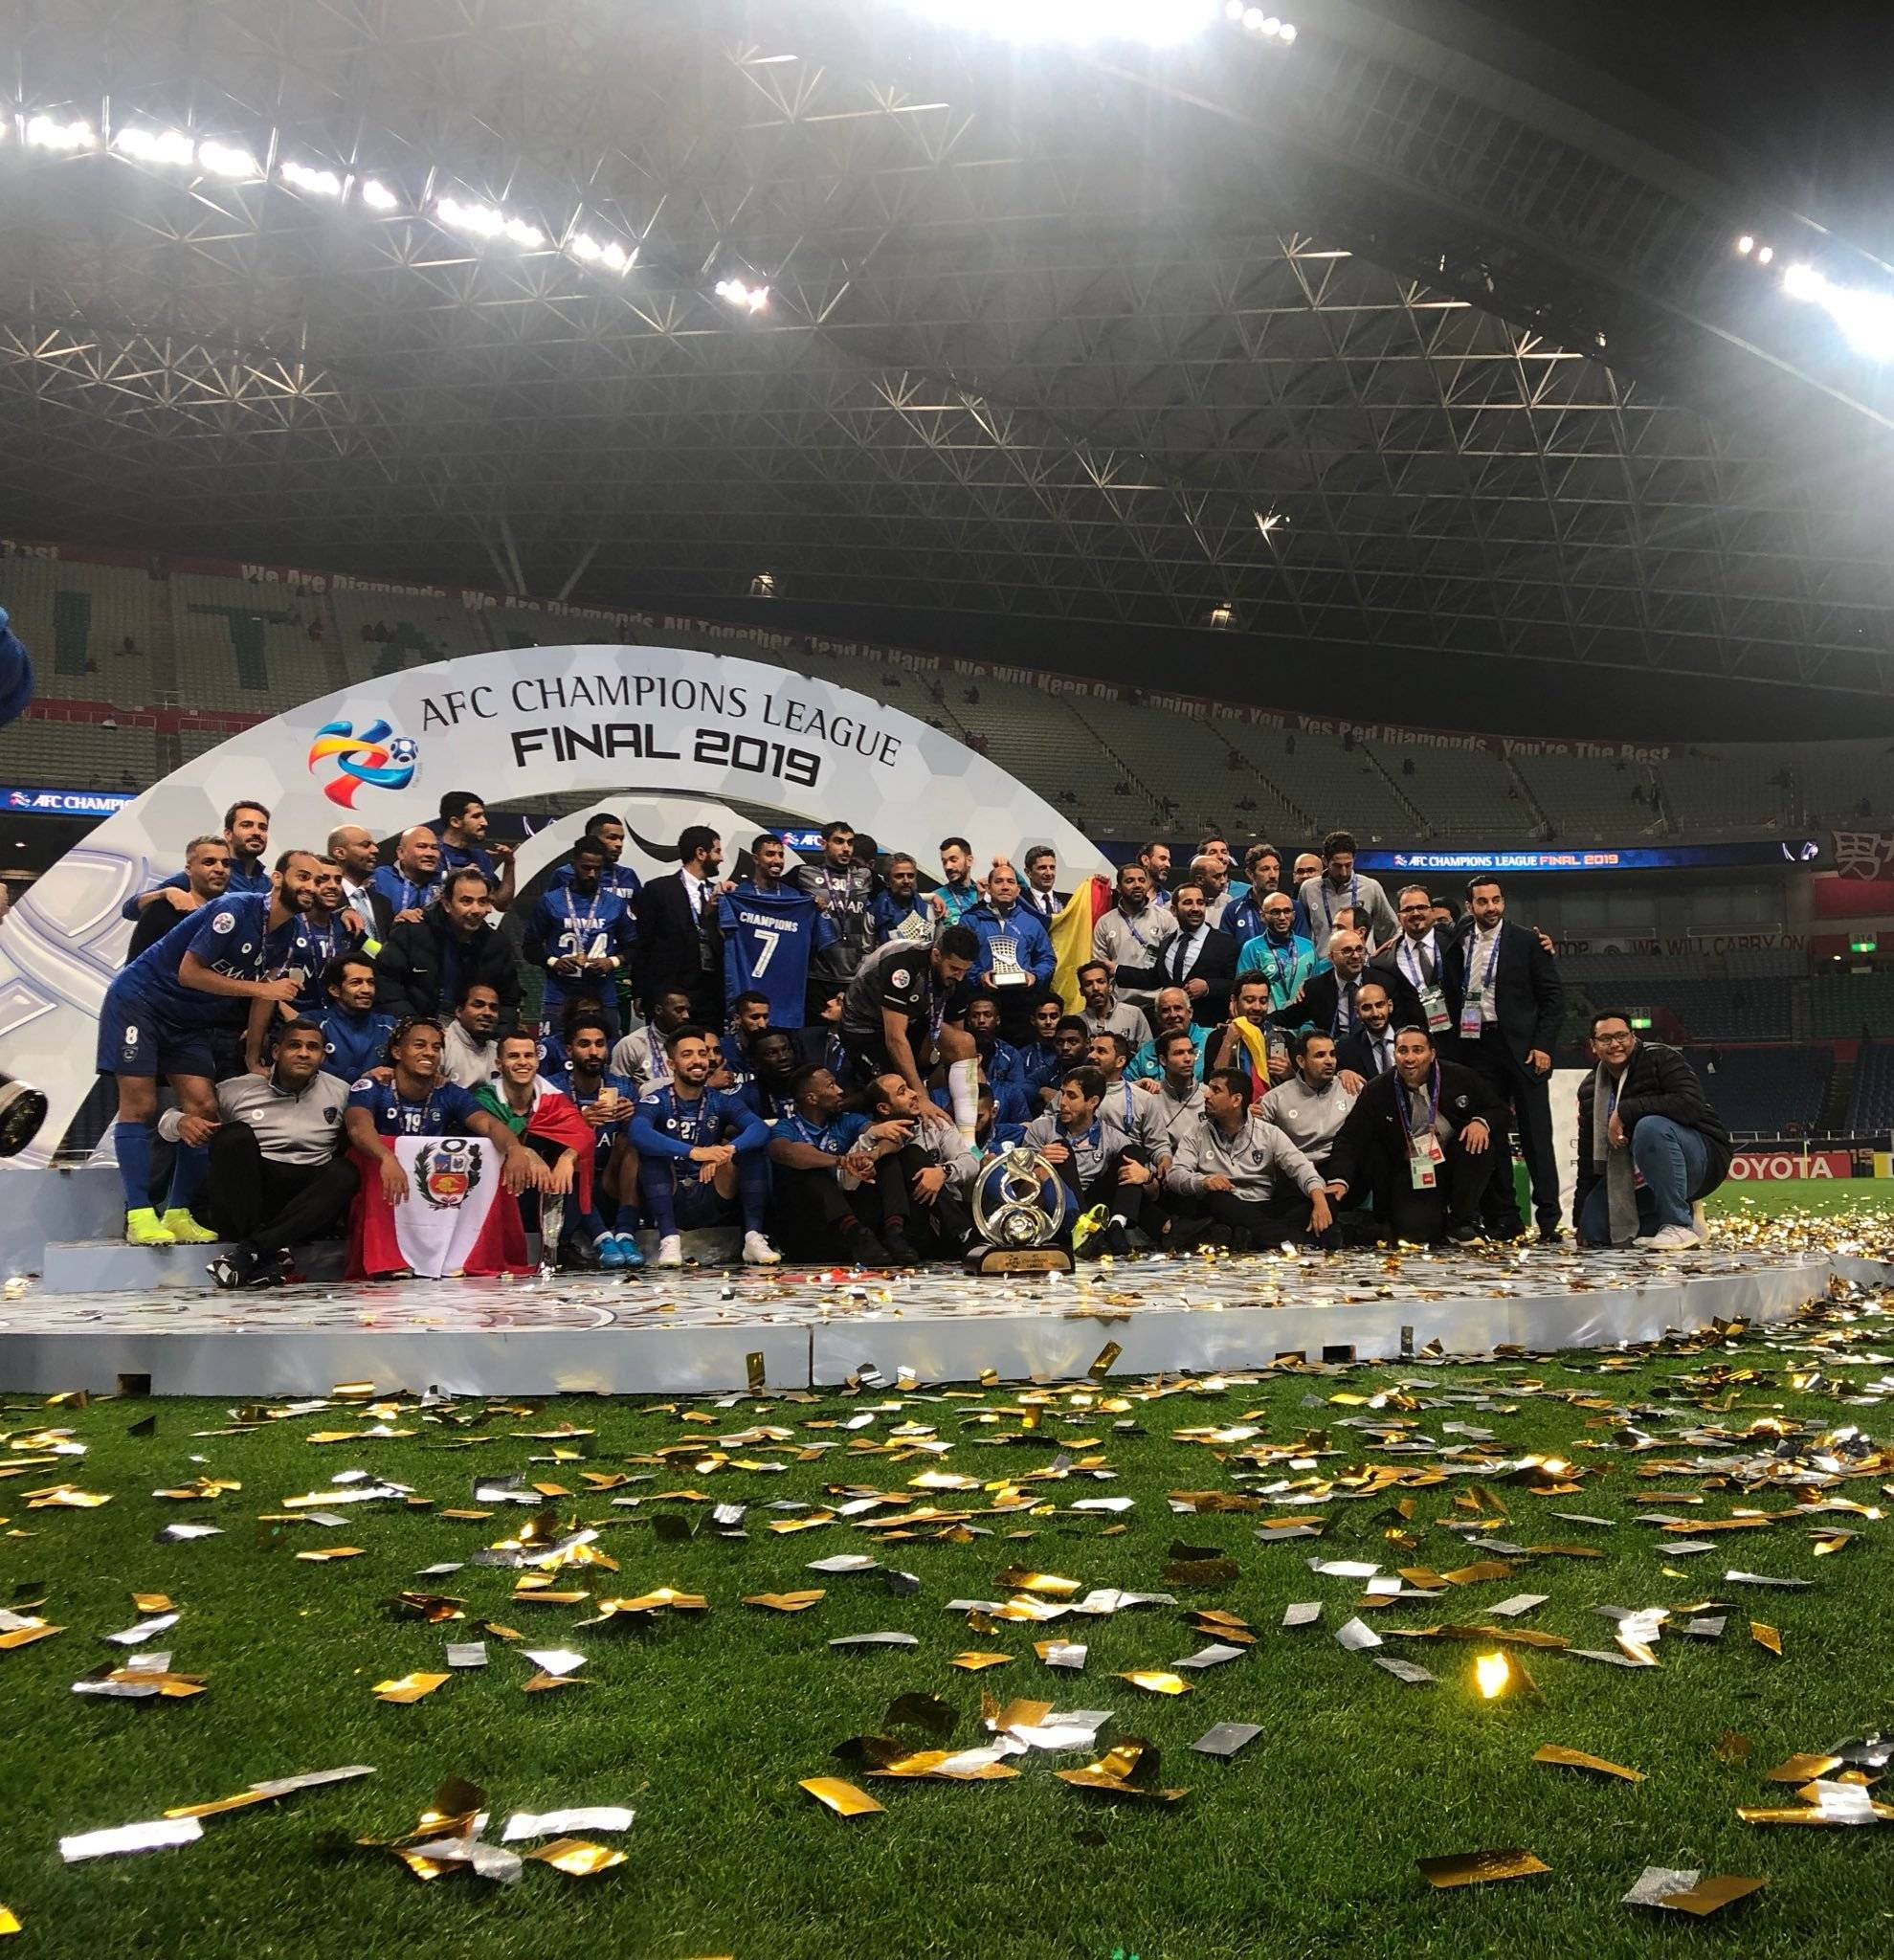 Al-Hilal Crowned Kings of Asia for the Third Time